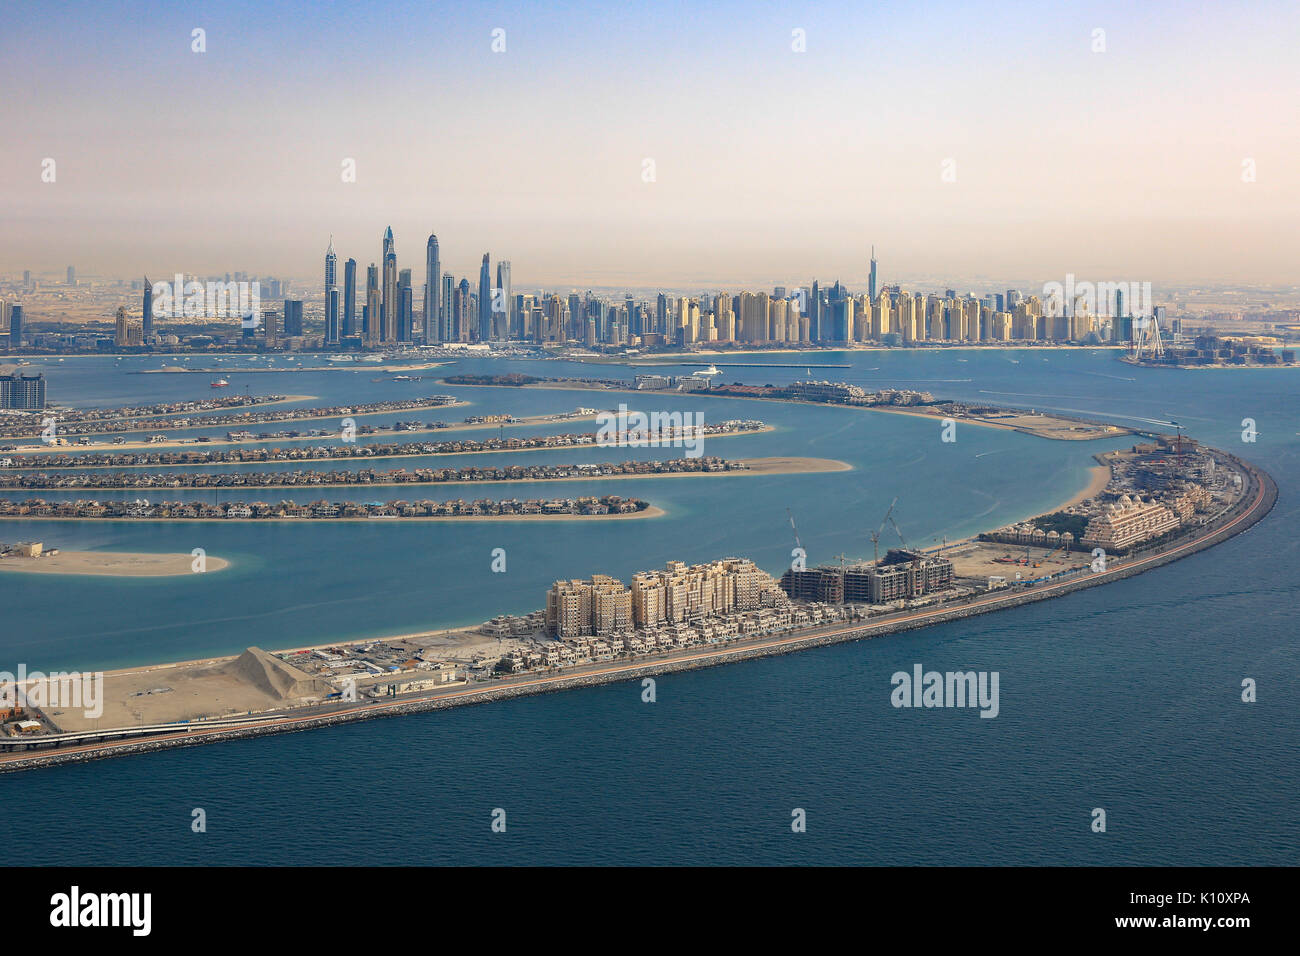 Dubai The Palm Jumeirah Island Marina aerial view photography UAE Stock Photo